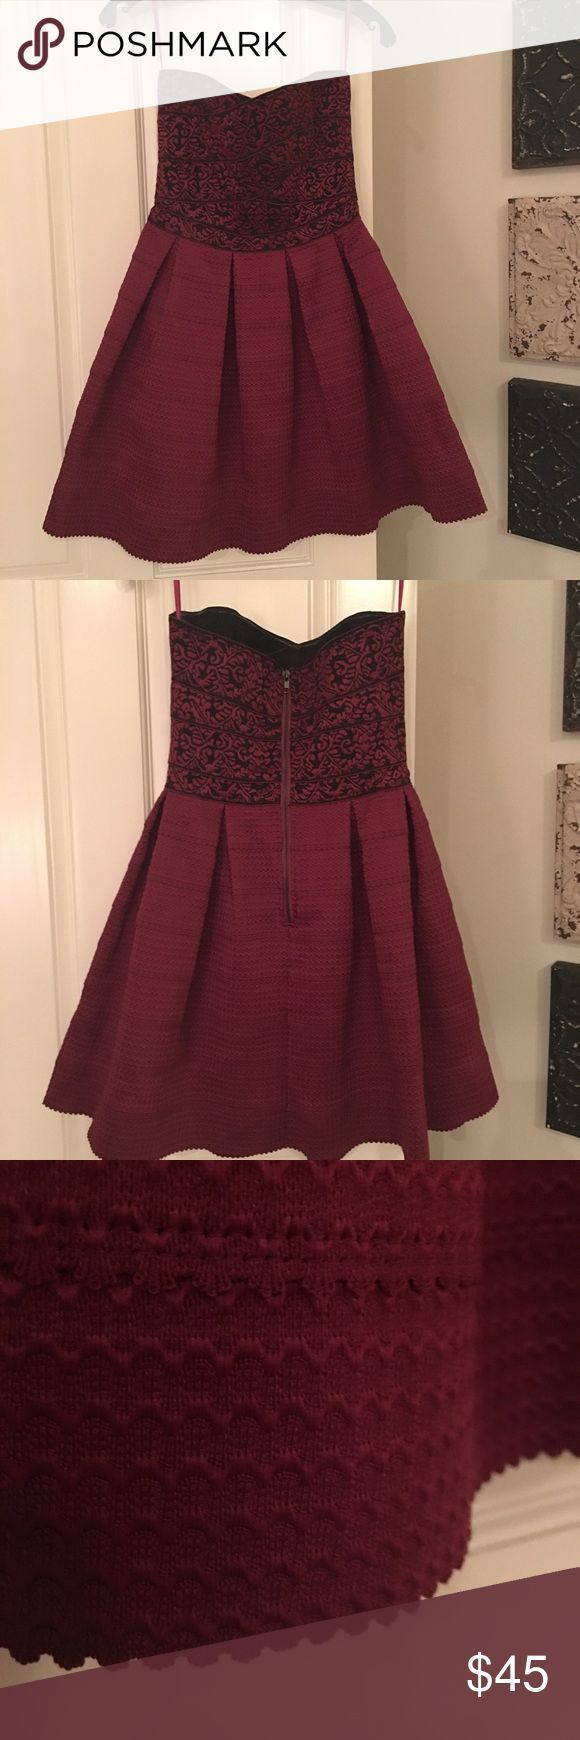 💃🏻Gorgeous strapless evening/prom dress💃🏻 Miami burgundy brocade bustier with solid skirt. Boning in top gives snug fit. Pleated skirt has scalloped detailed hem. Perfect for that fun dressy night! Size small (2-4). Worn once. Miami Dresses Prom